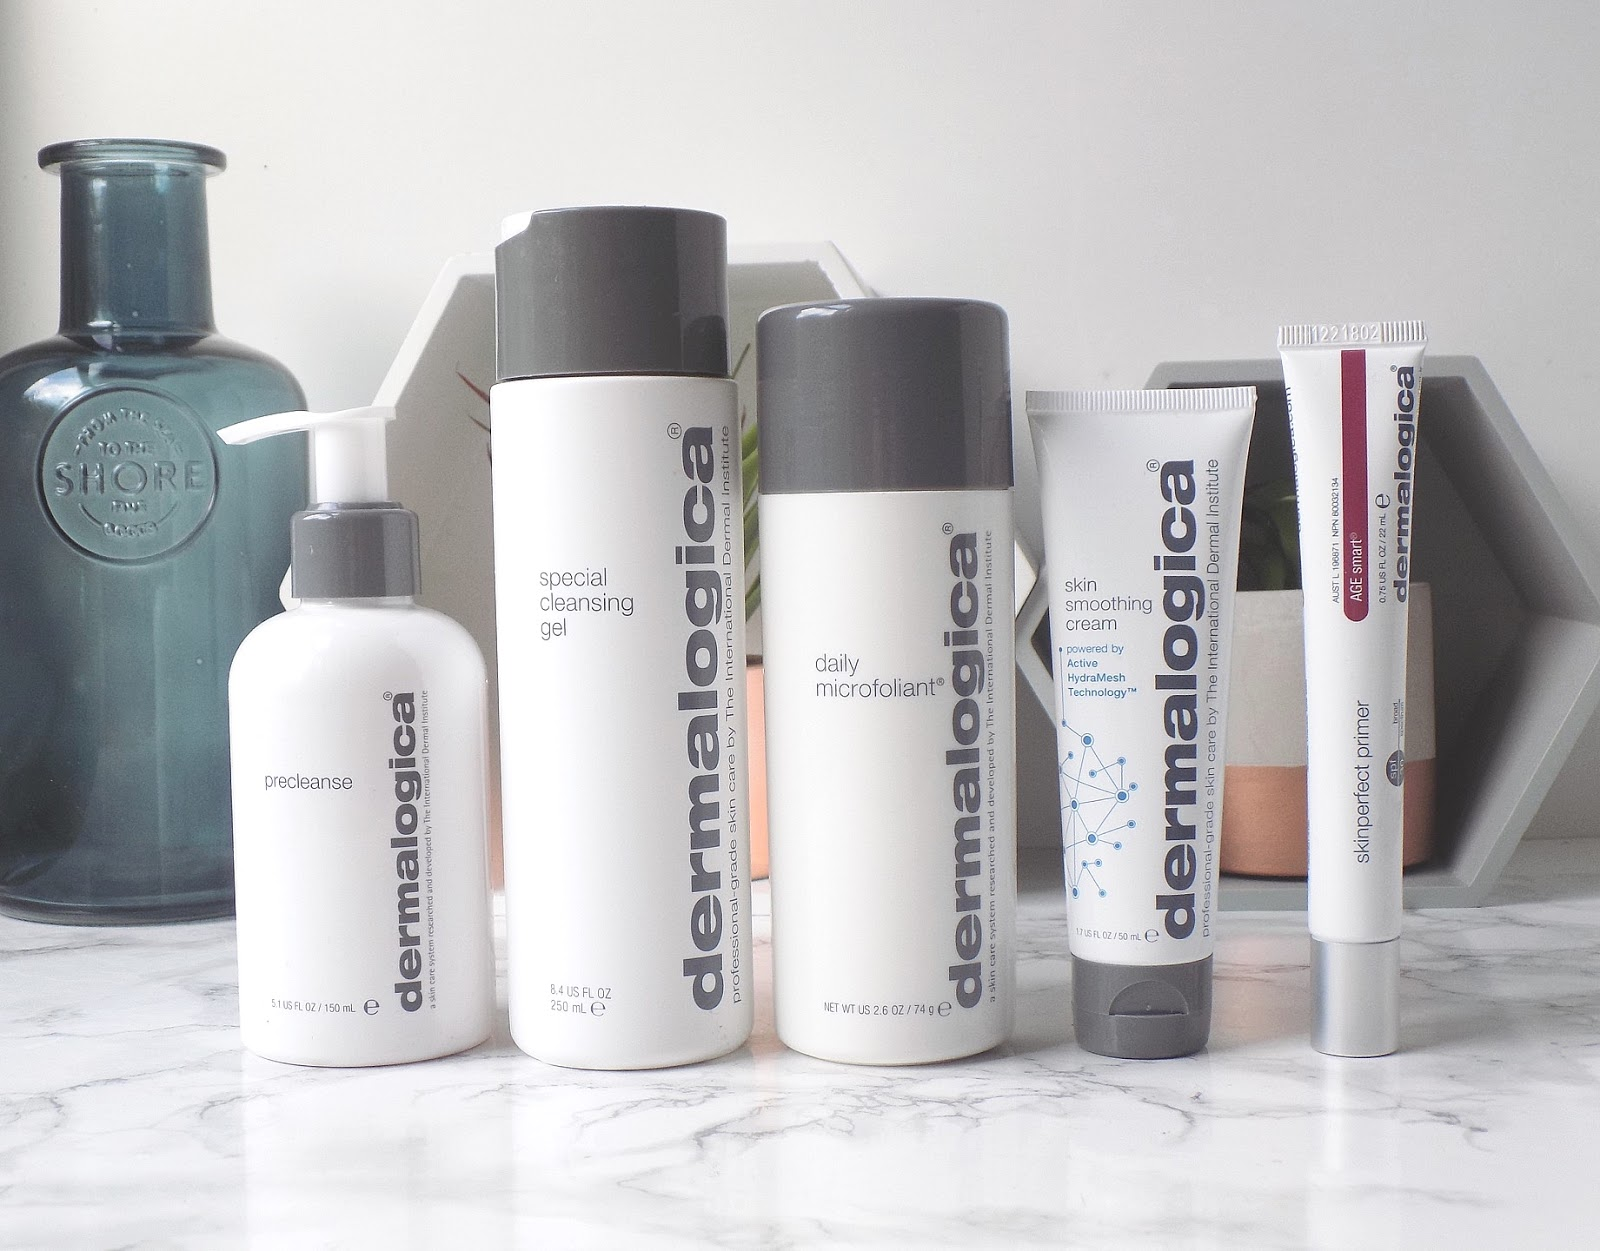 dermalogica pre cleanse microfoliant special cleansing gel skin smoothing cream skin perfect primer review